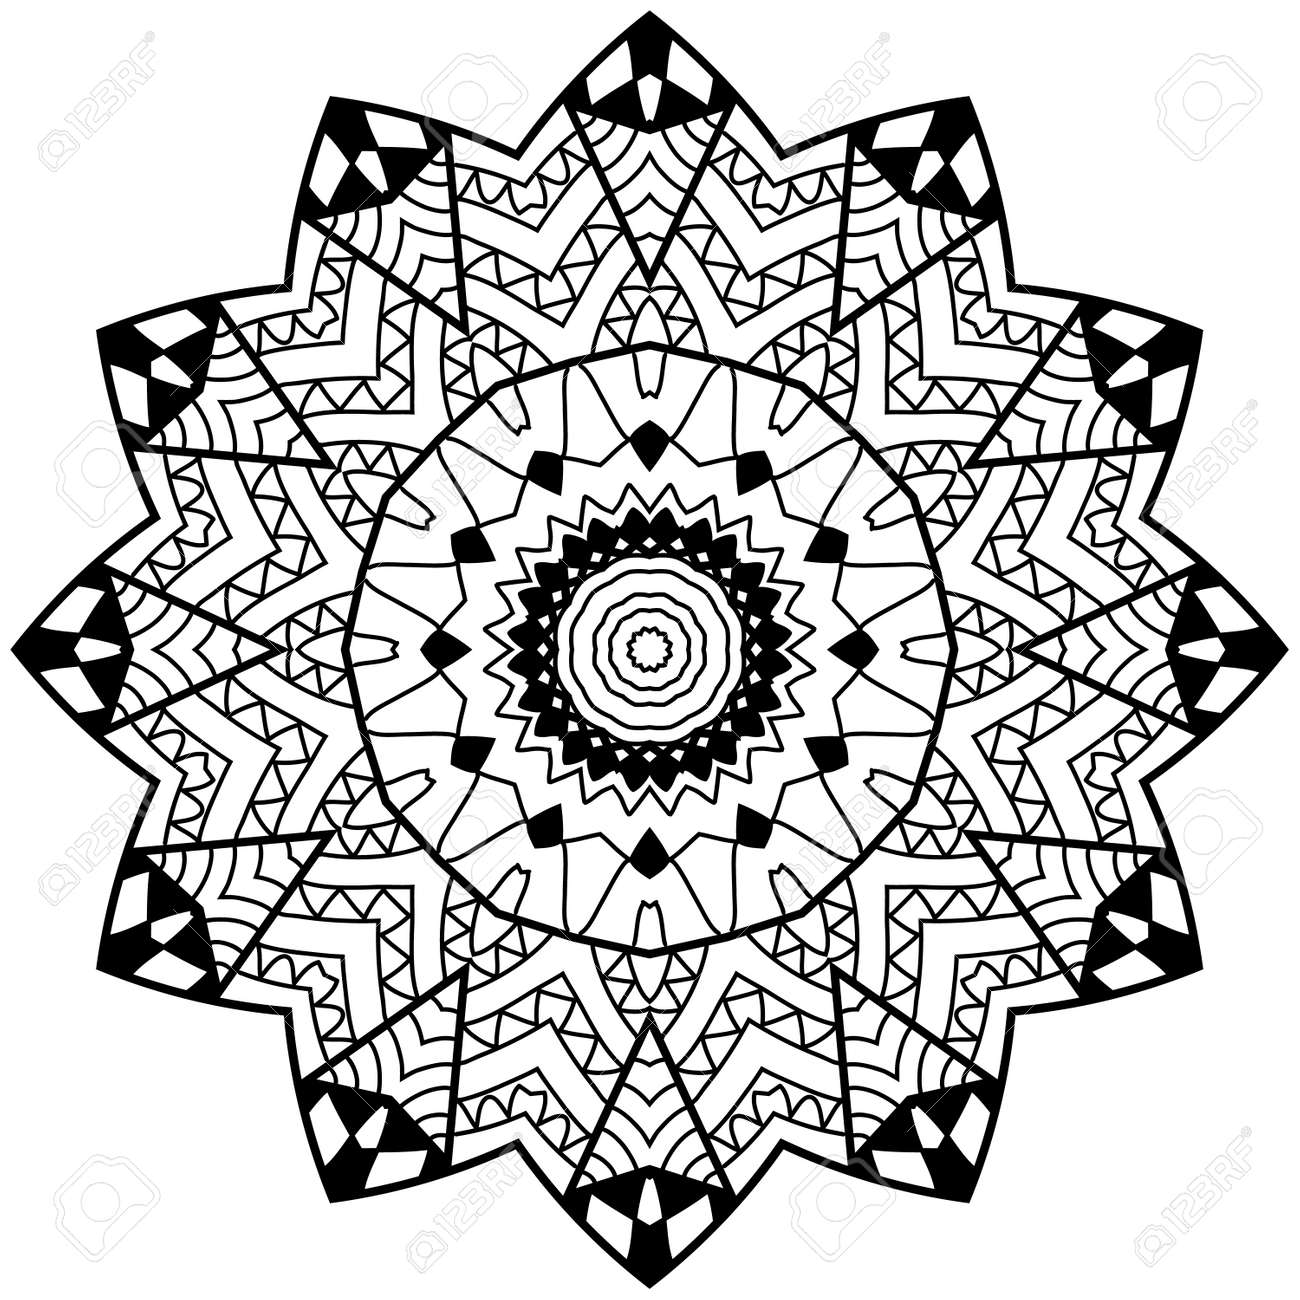 Adult Coloring Page. Floral Doodle Art. Mandala With Hand Drawn ...